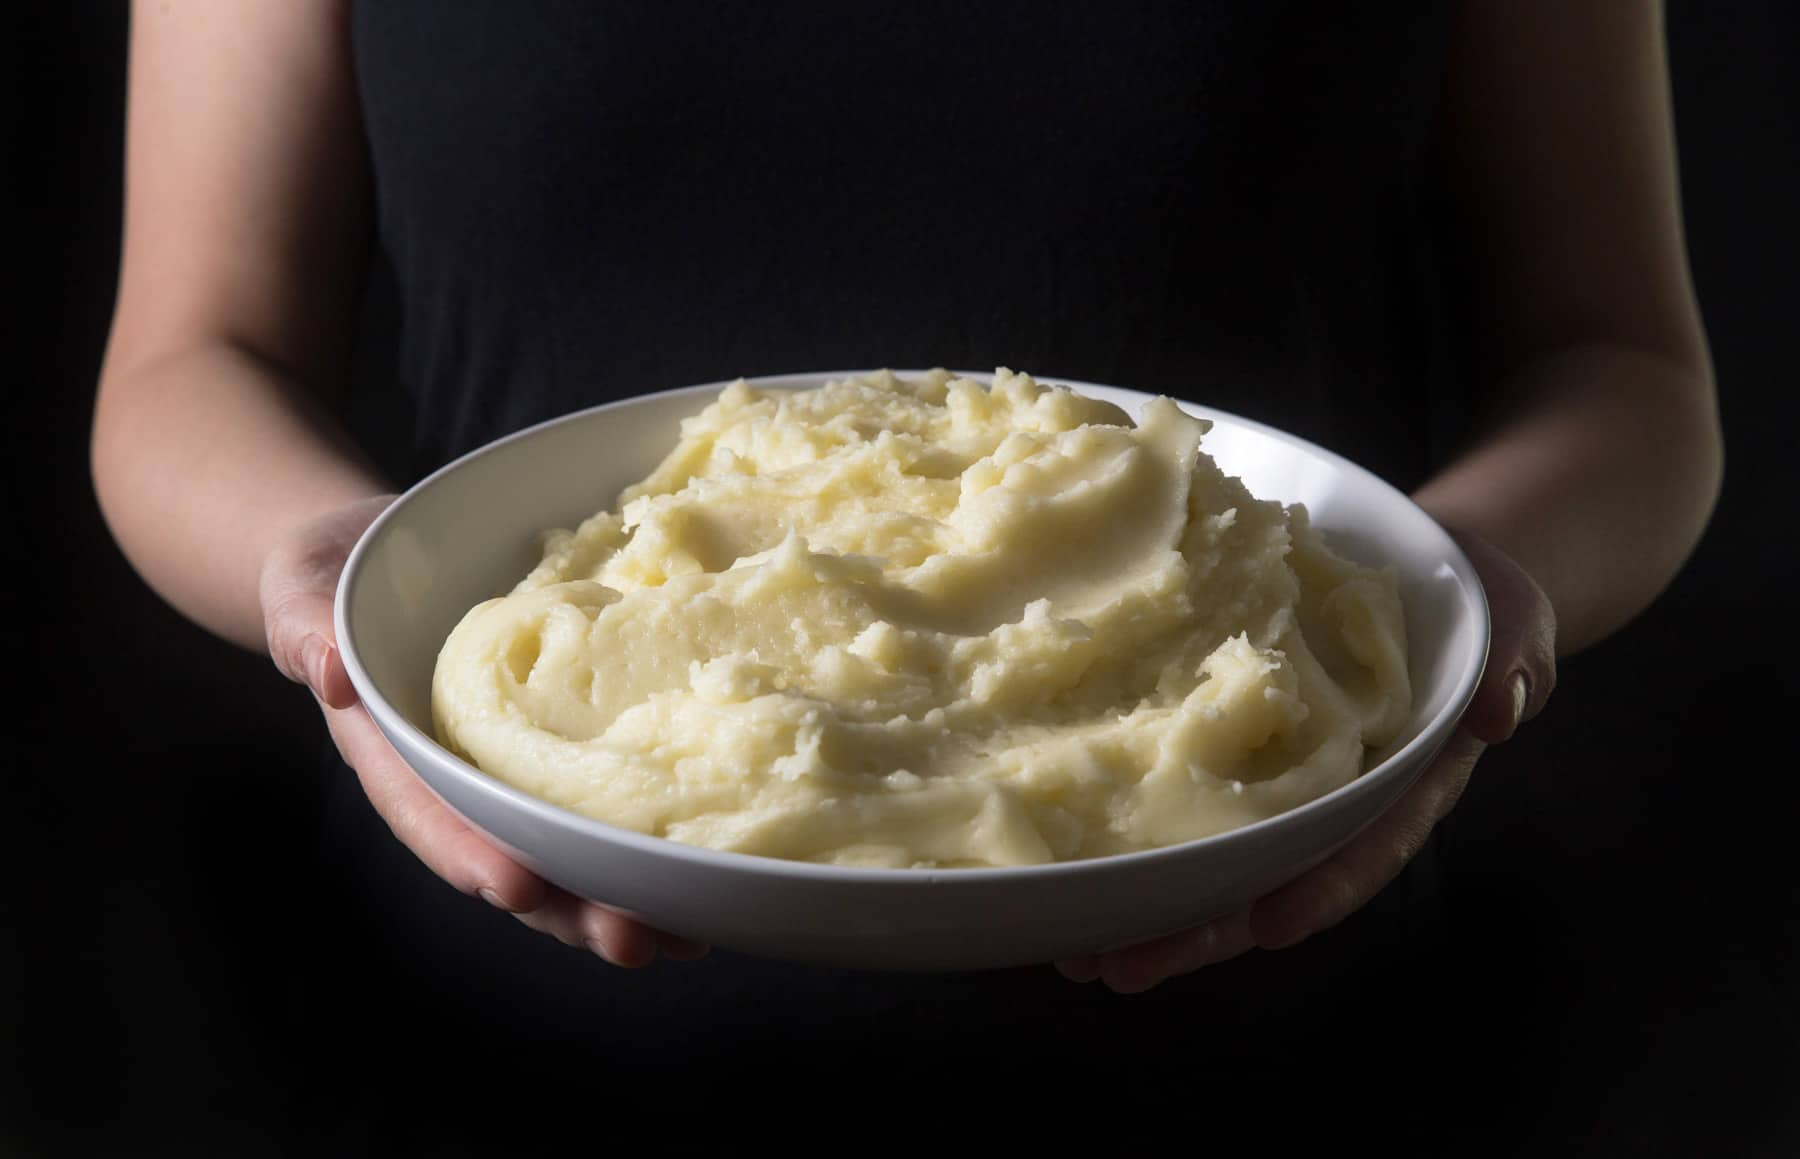 Michelin-Star Inspired Instant Pot Mashed Potatoes Recipe: how to make the best homemade mashed potatoes with 4 simple ingredients. Creamy smooth, fluffy and buttery spoonful of heaven.